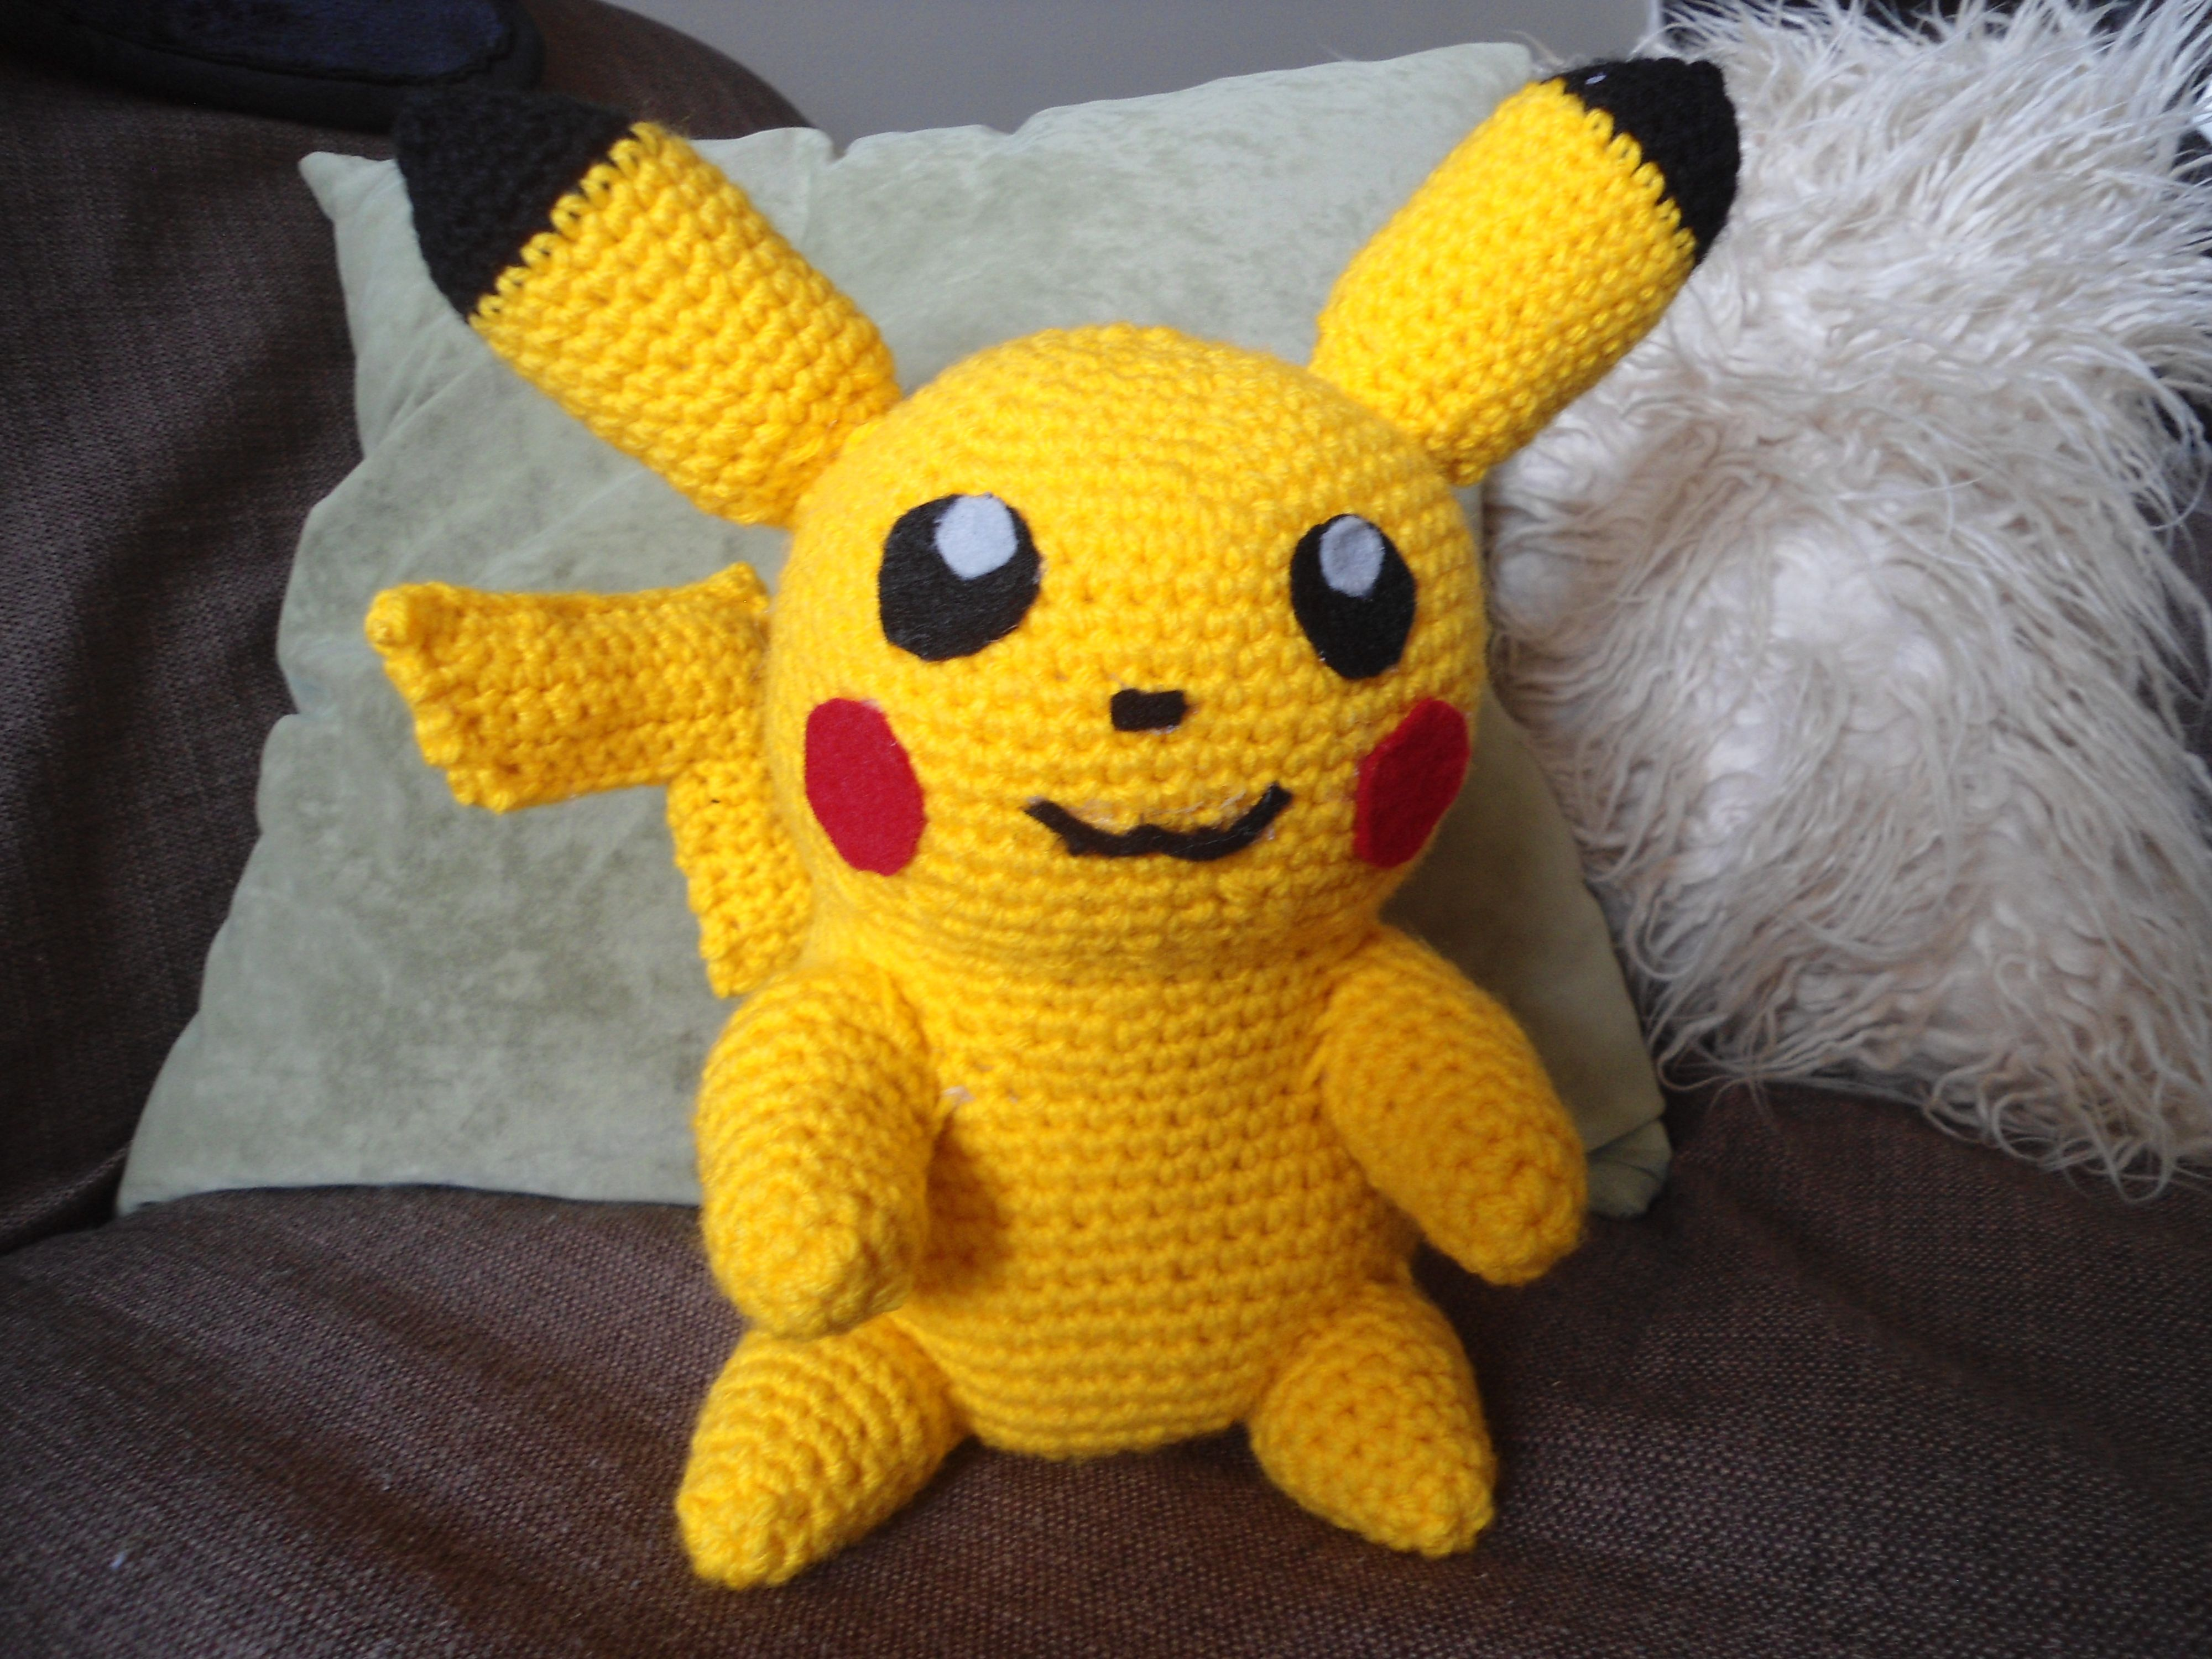 Amigurumi Patterns Pikachu : This pikachu is based on the pattern from sabrina's crochet website